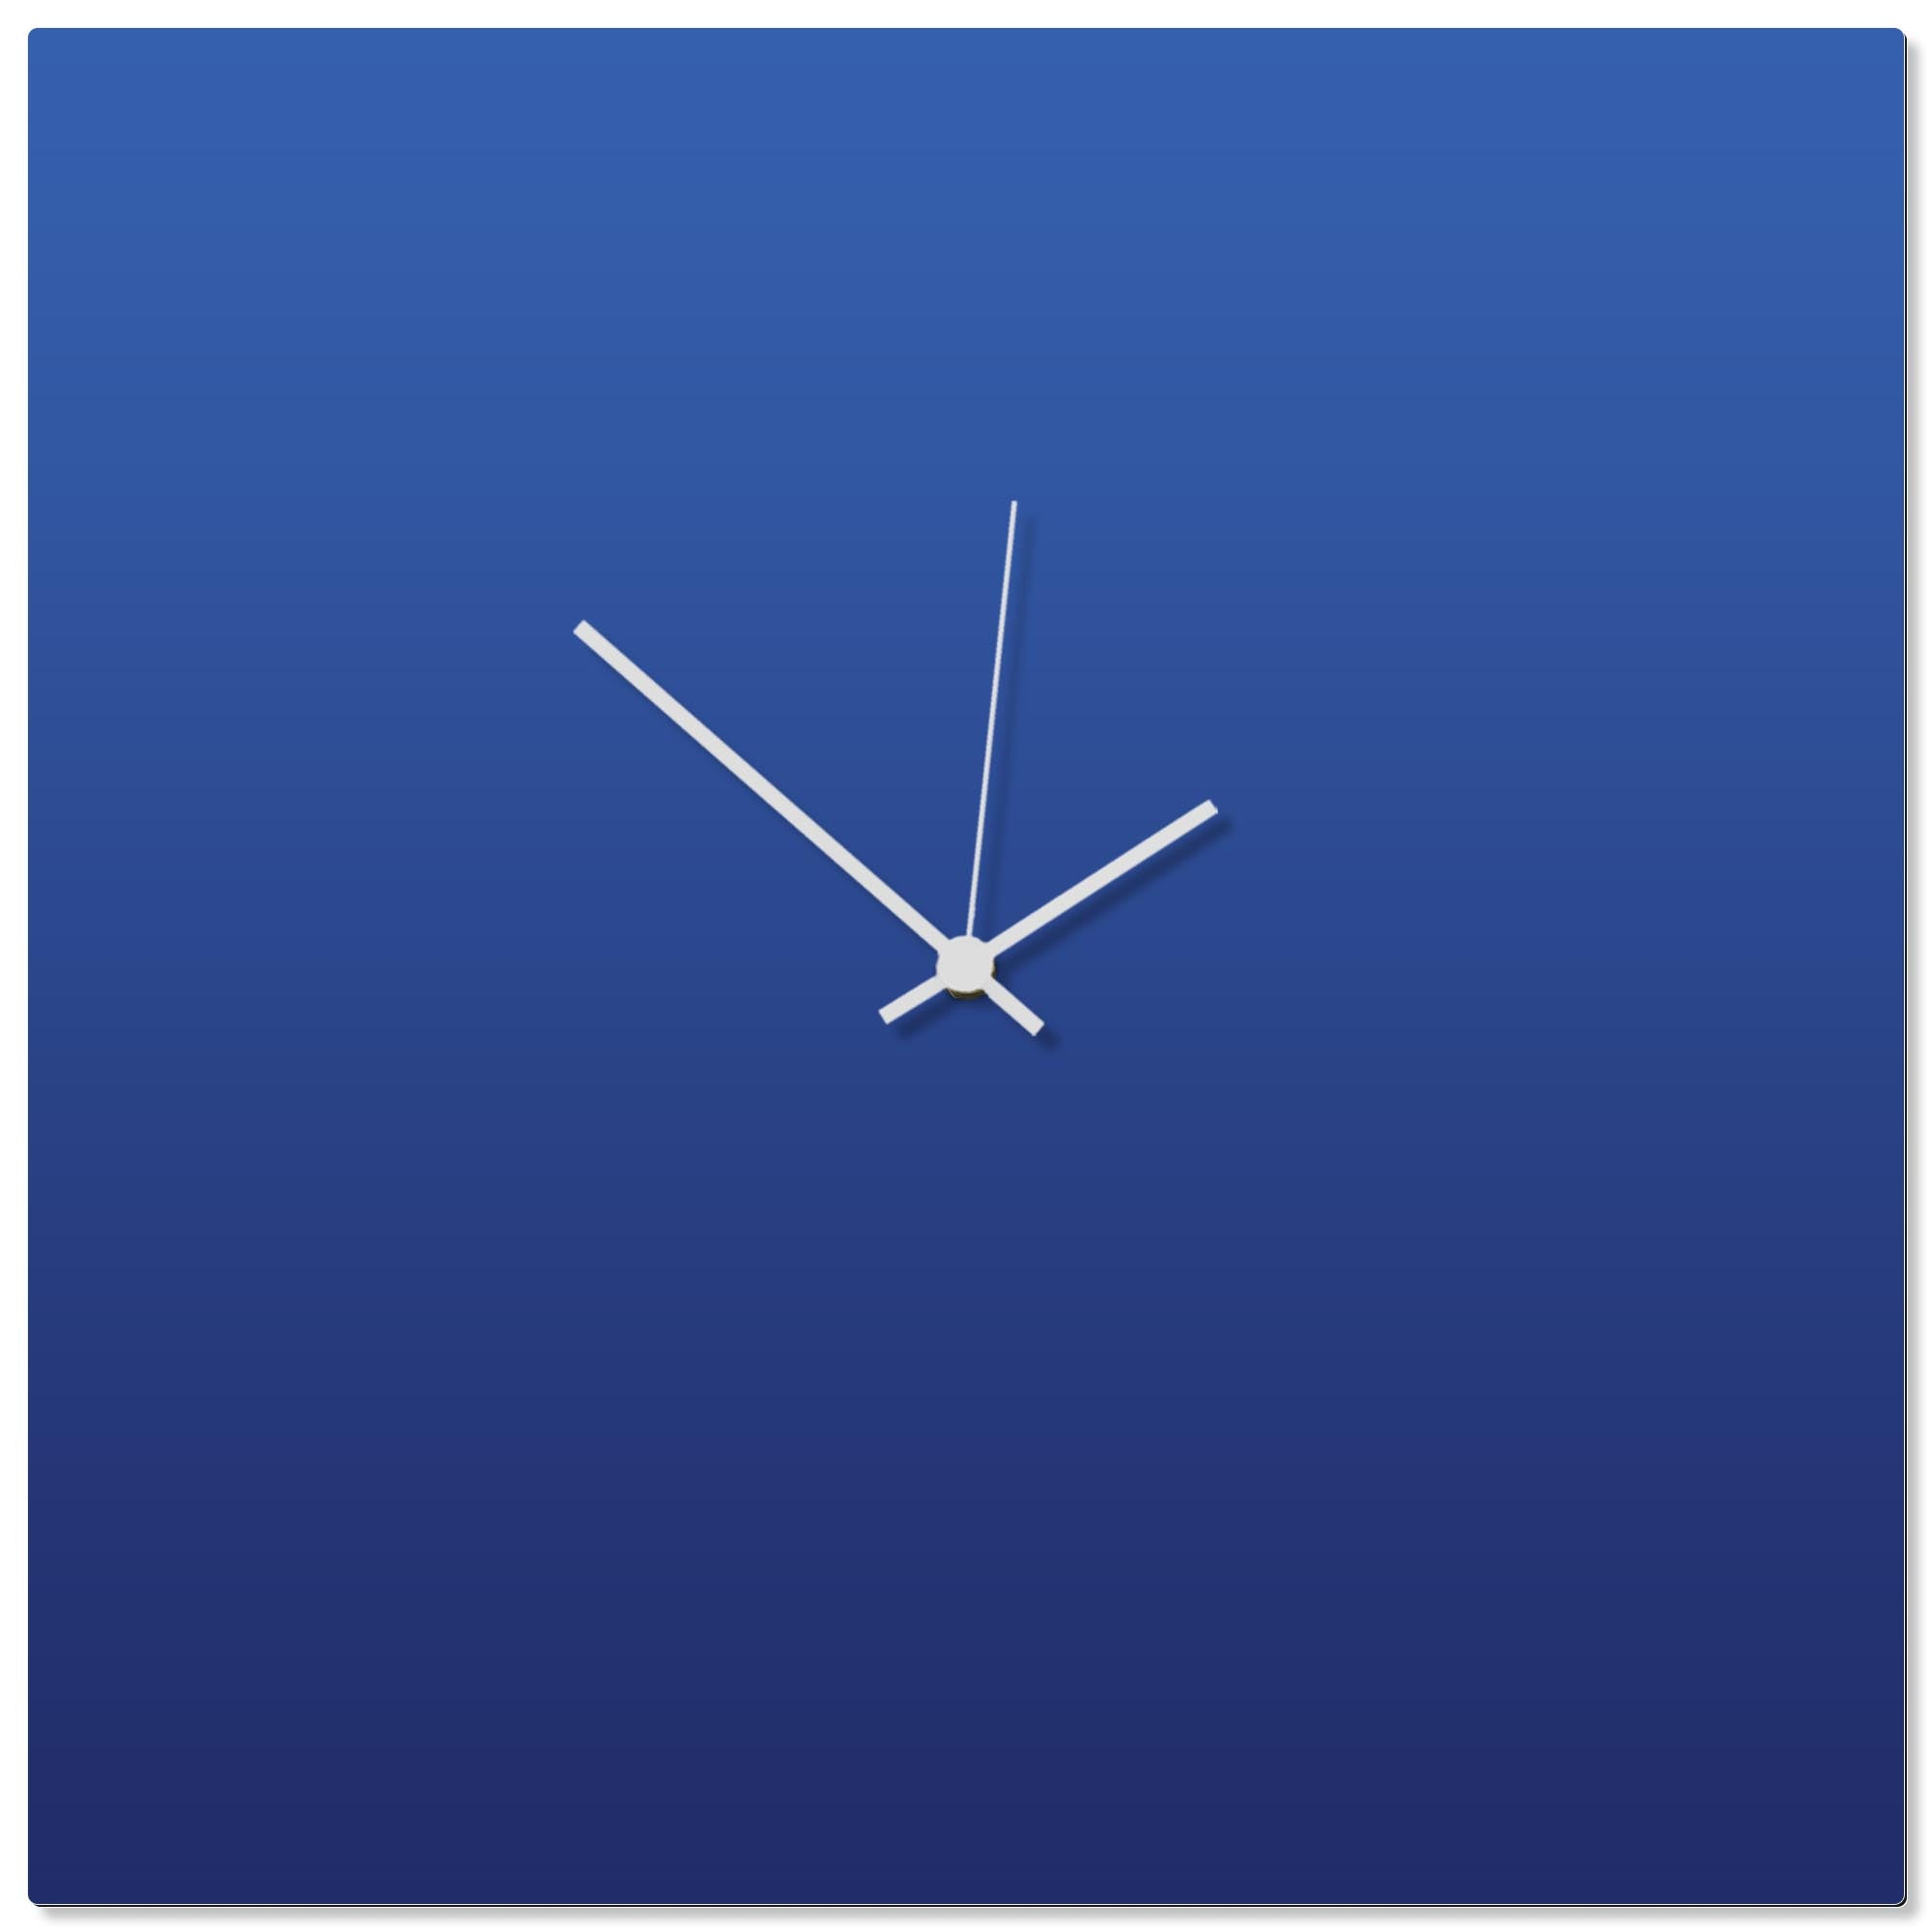 Blueout White Square Clock Large by Adam Schwoeppe - Contemporary Clock on Aluminum Polymetal